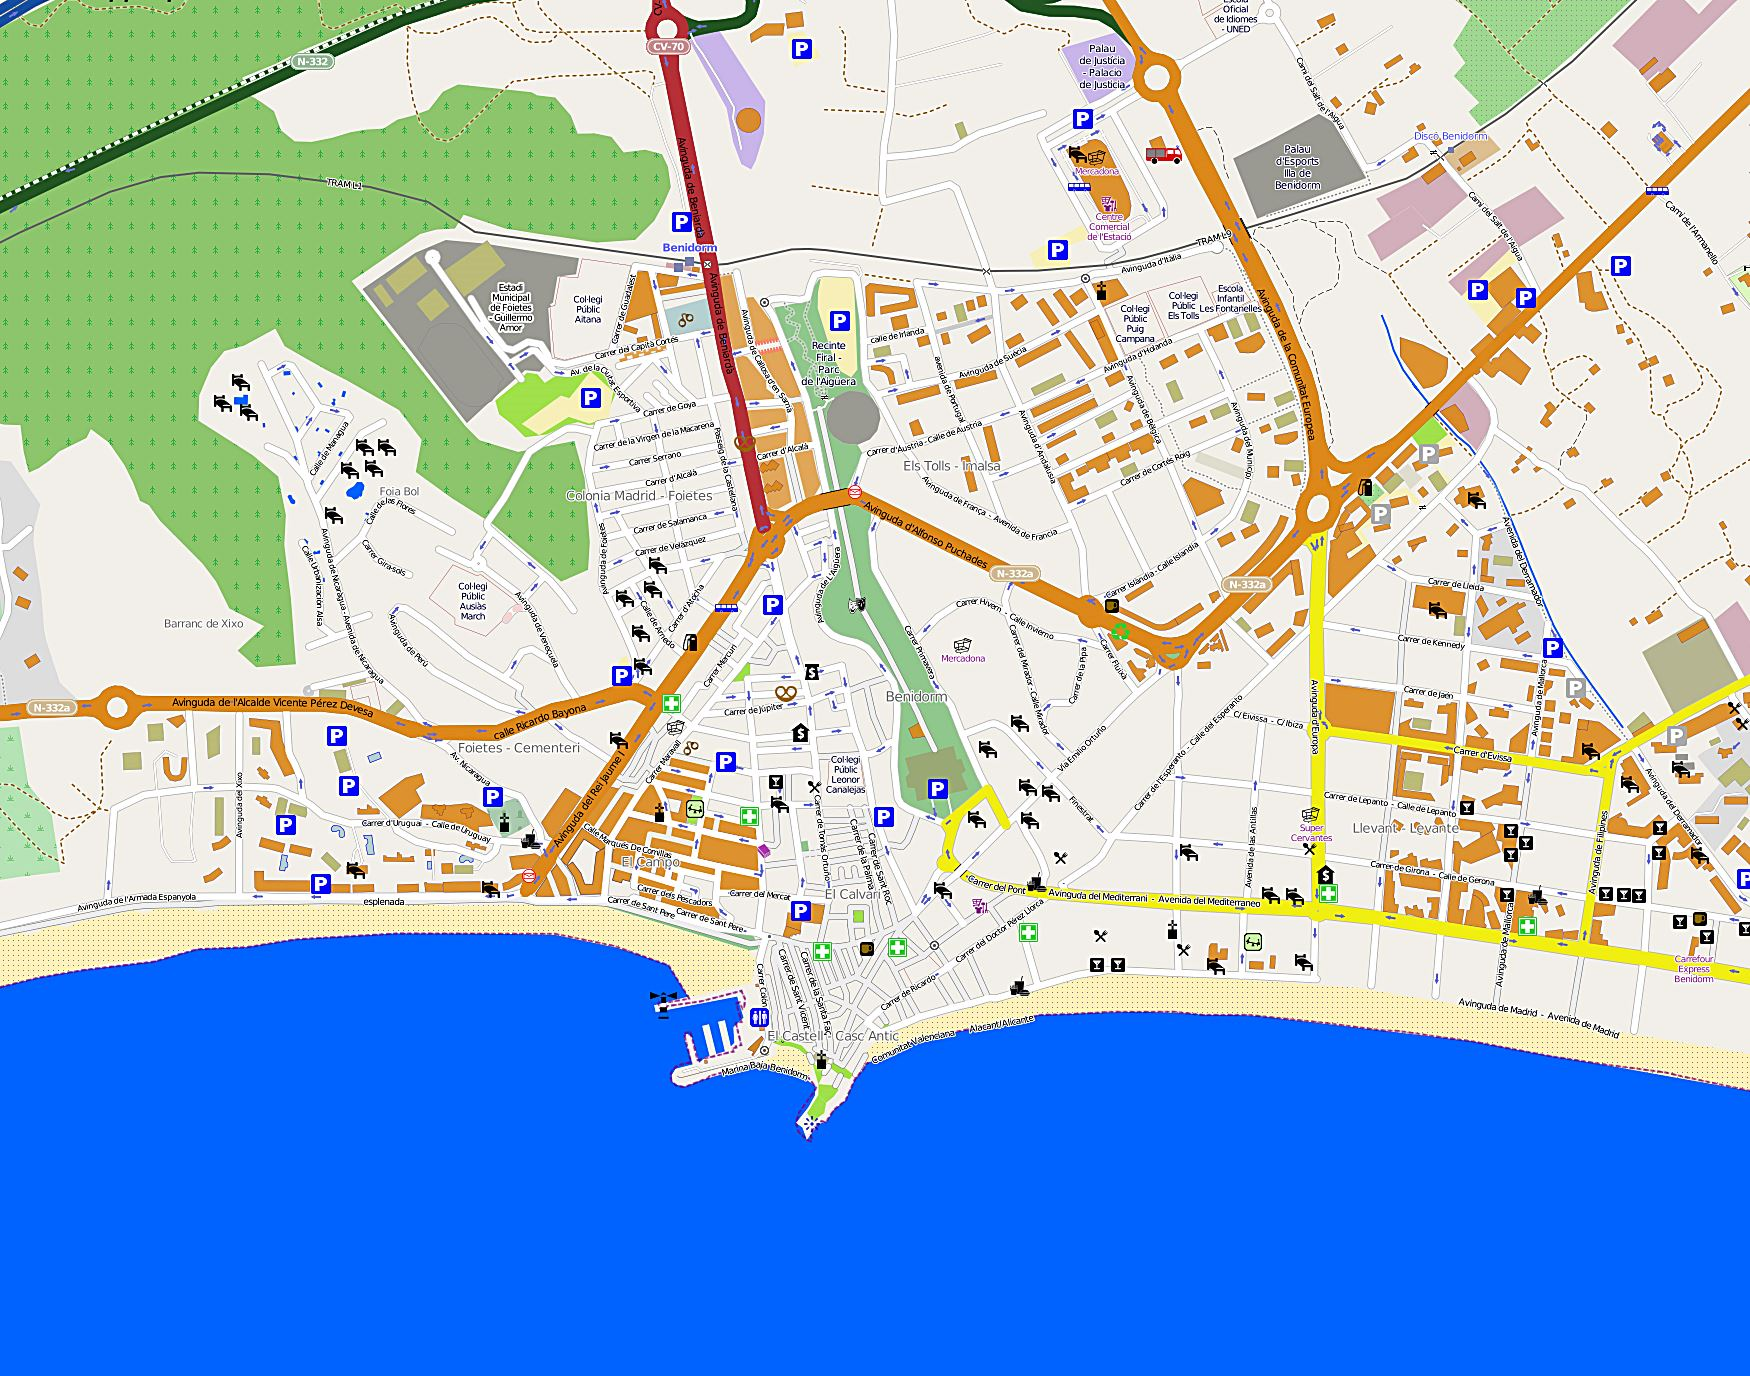 Benidorm Street Map Large Benidorm Maps for Free Download and Print | High Resolution